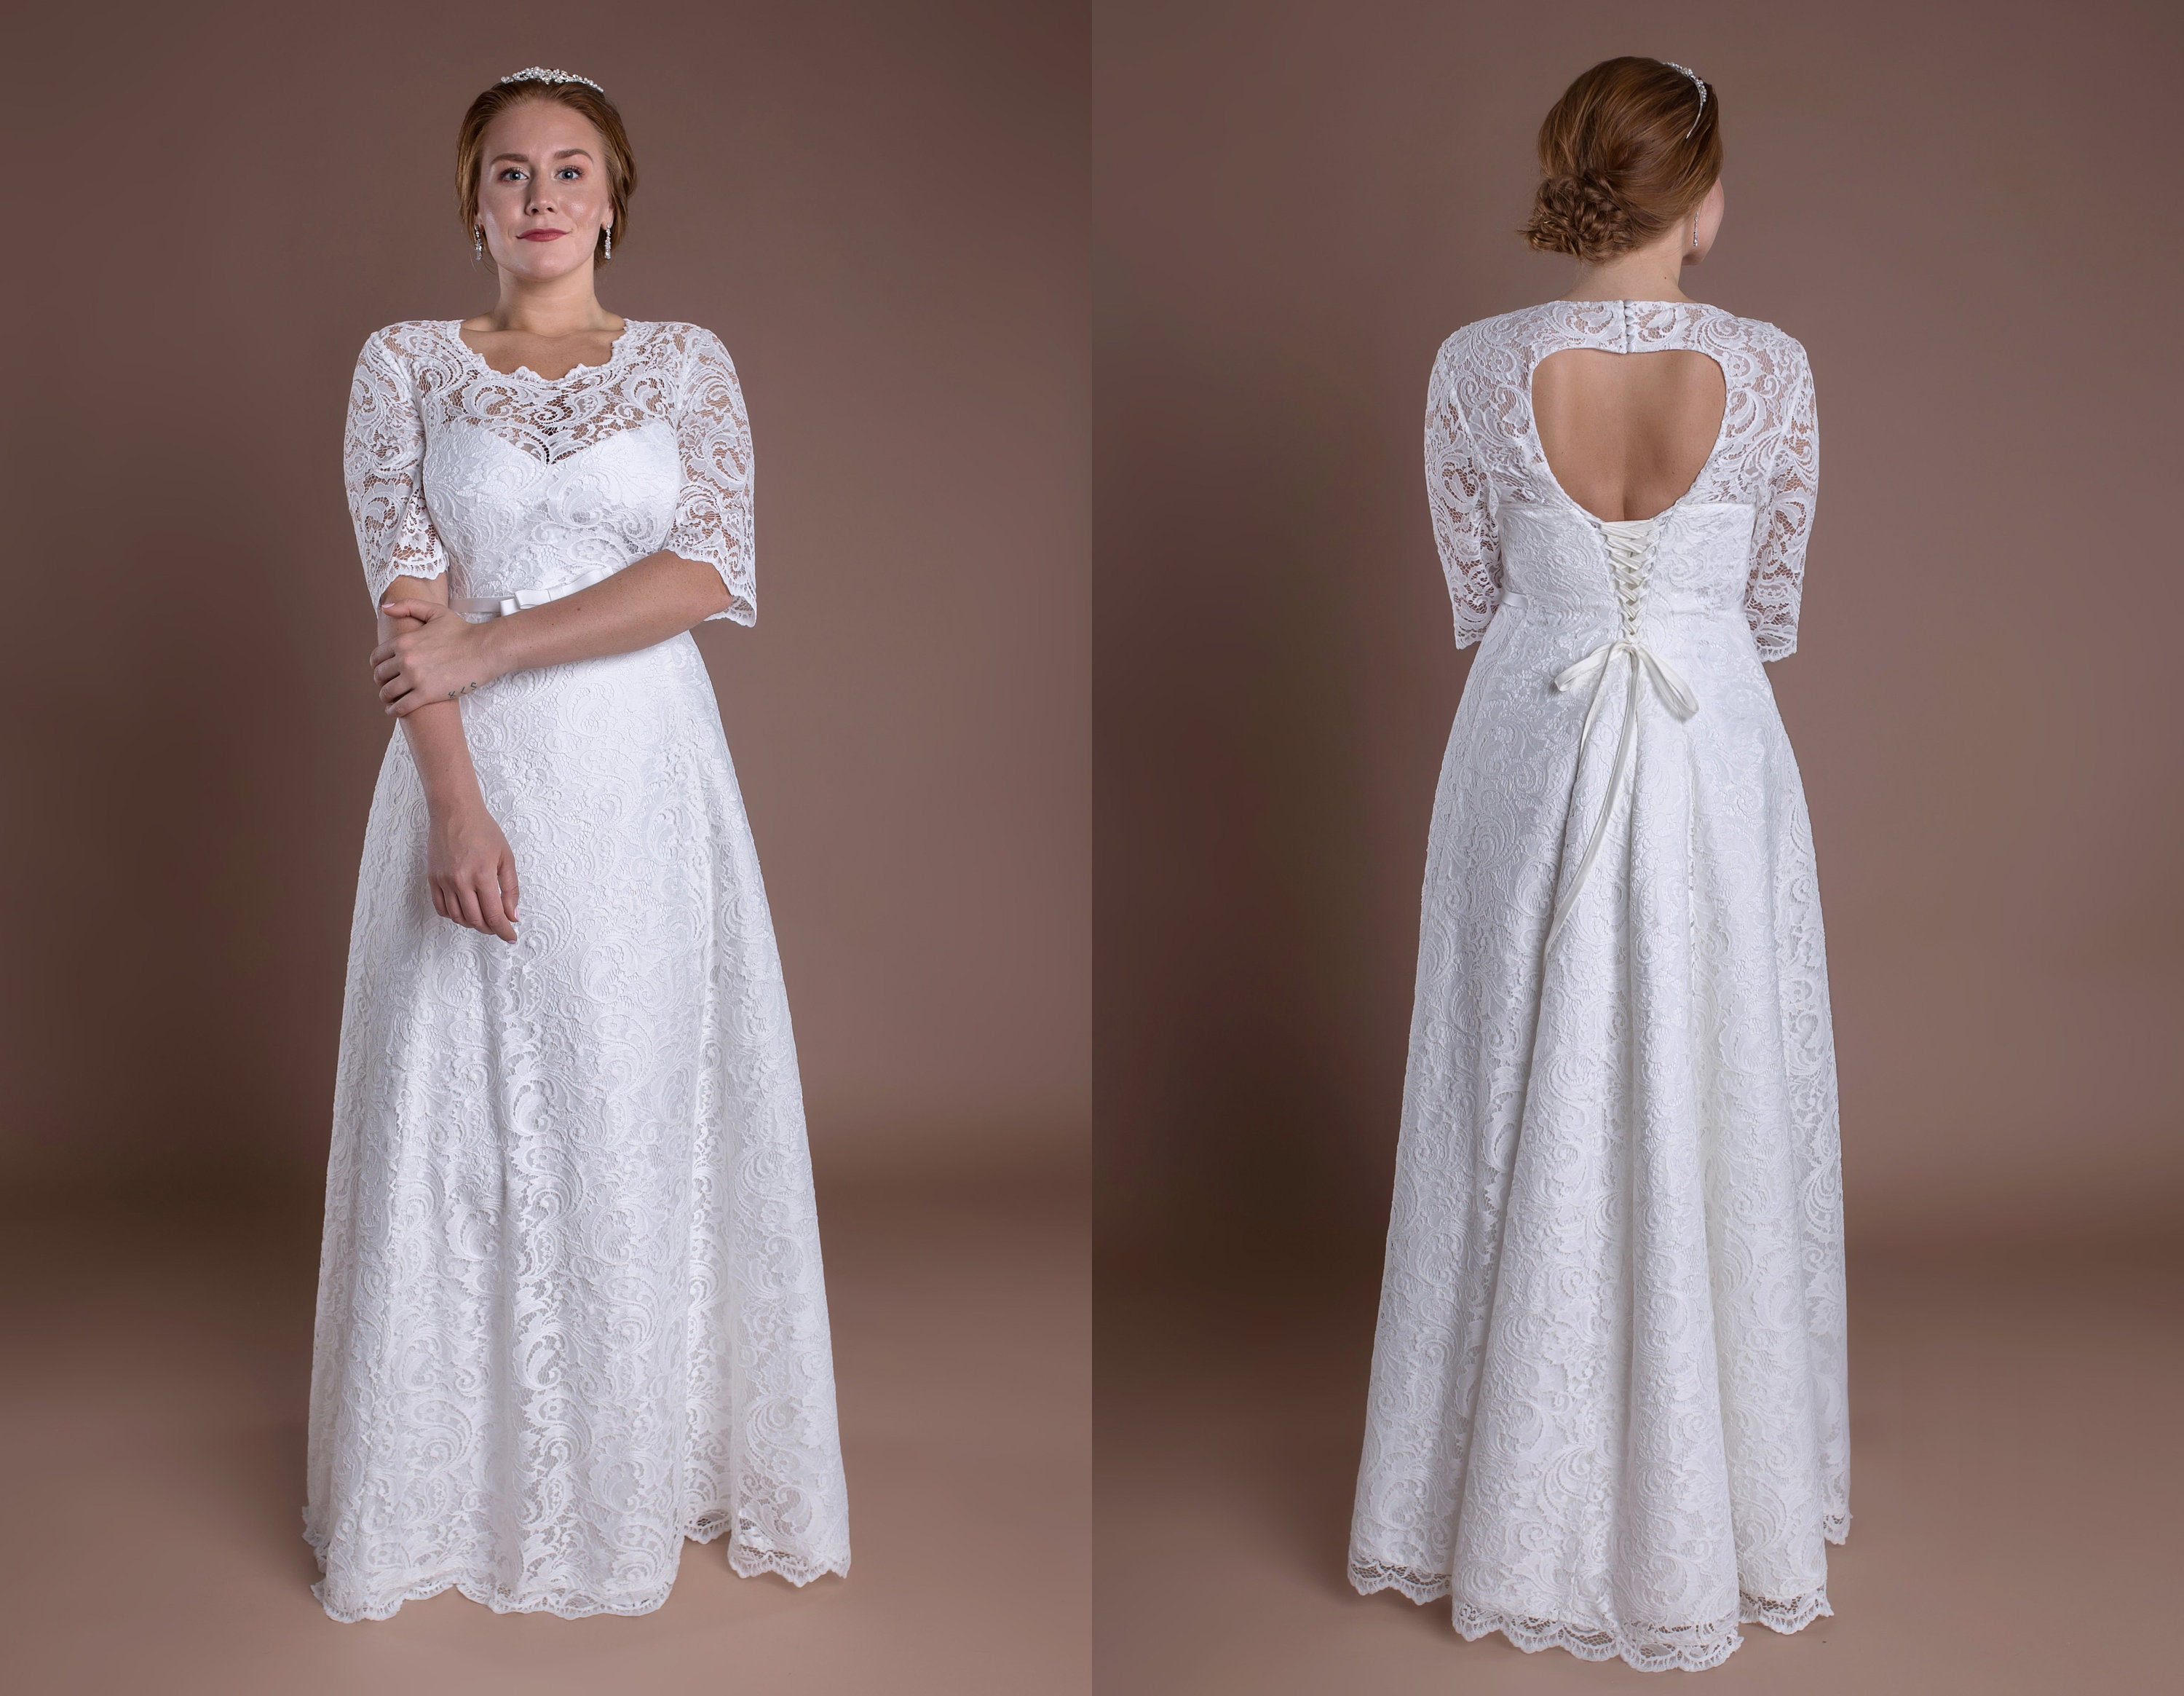 dfb3158cea2 Long Lace Keyhole Back Wedding Dress With Sleeves Romantic